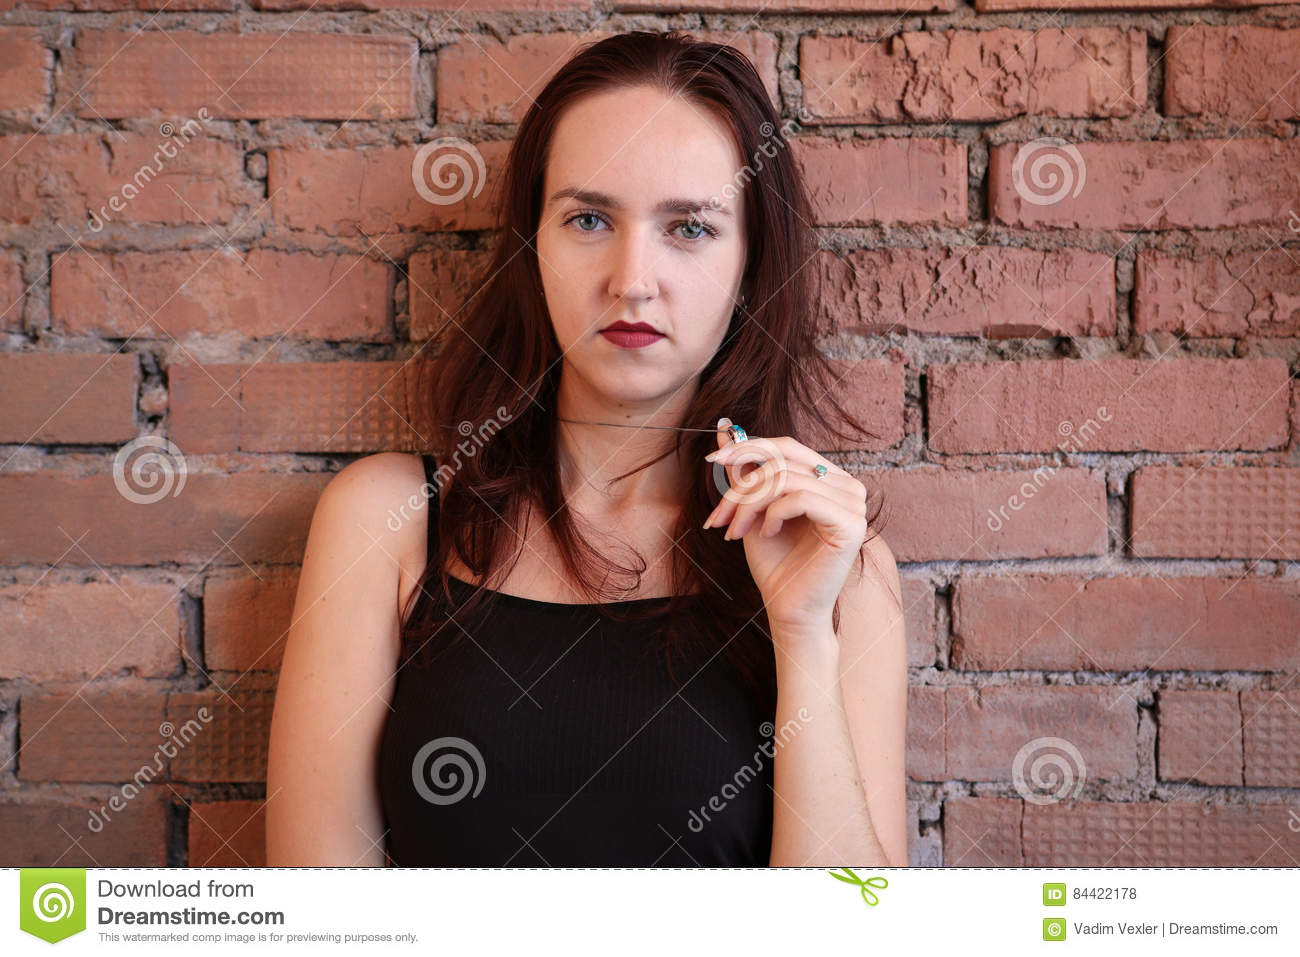 The Woman In Black Top Poses Near A Brick Wall